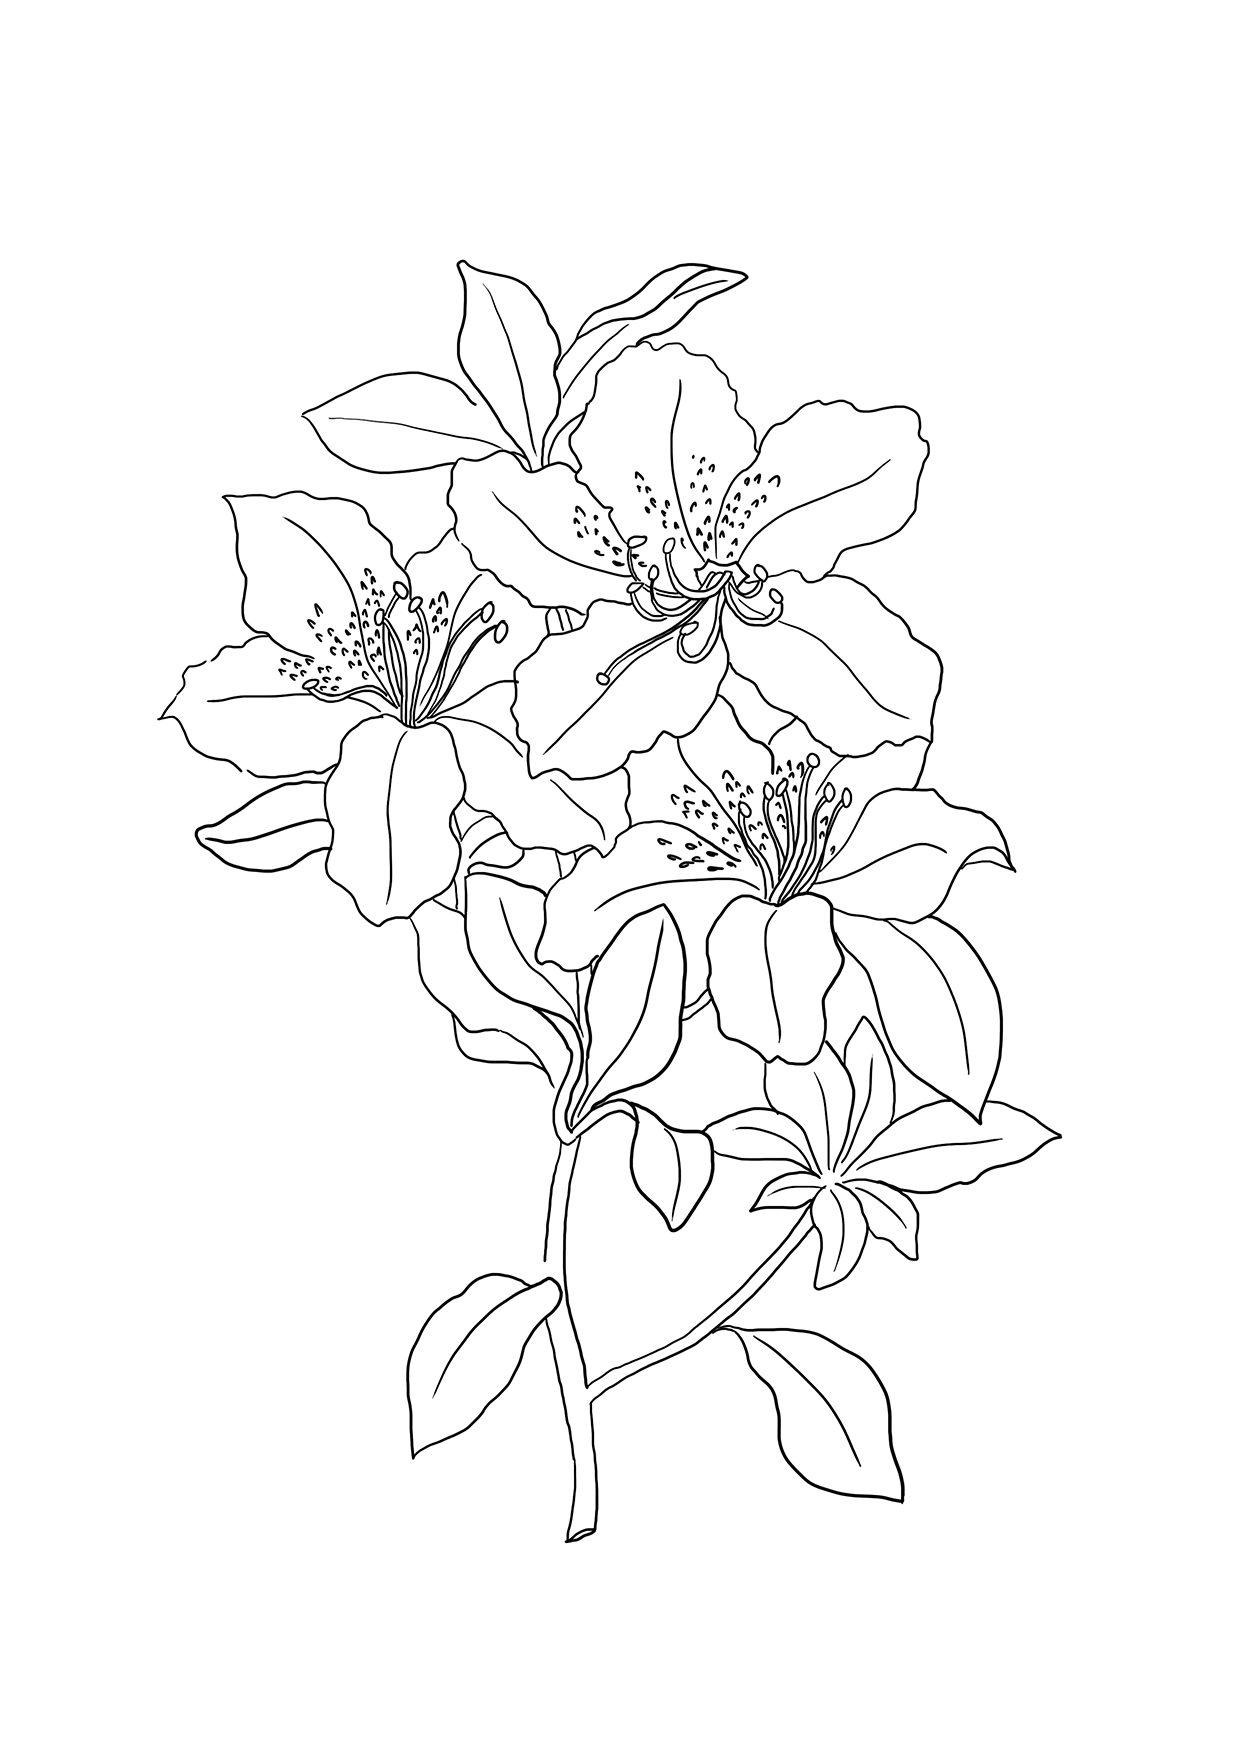 Lilies Coloring Page And Banner Coloring Pages